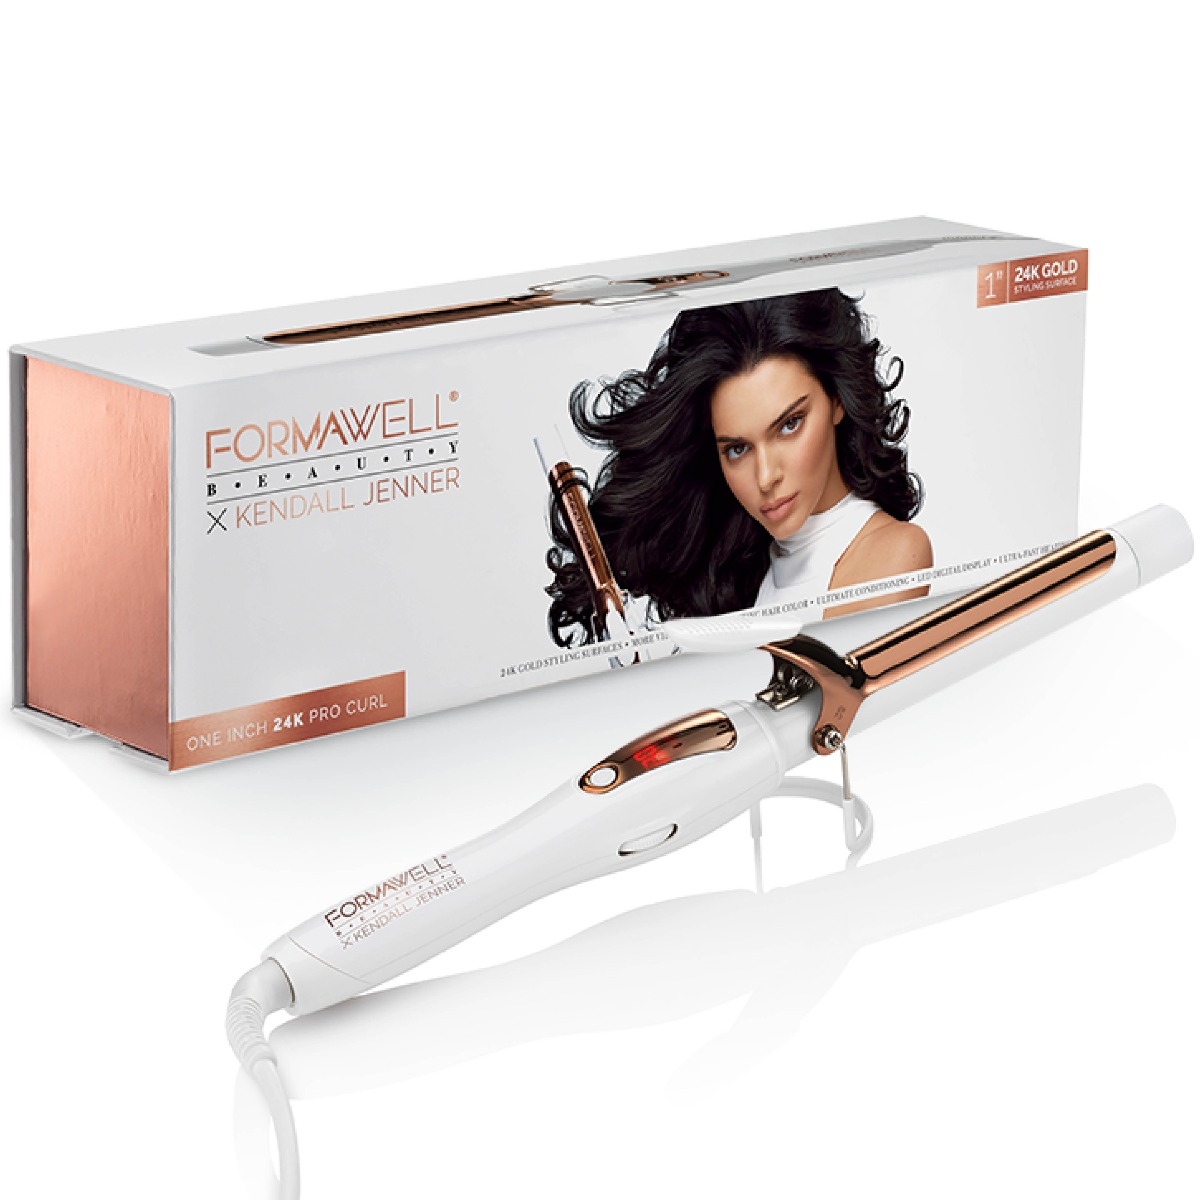 An image of Formawell Beauty X Kendall Jenner Gold Pro Curling Tong